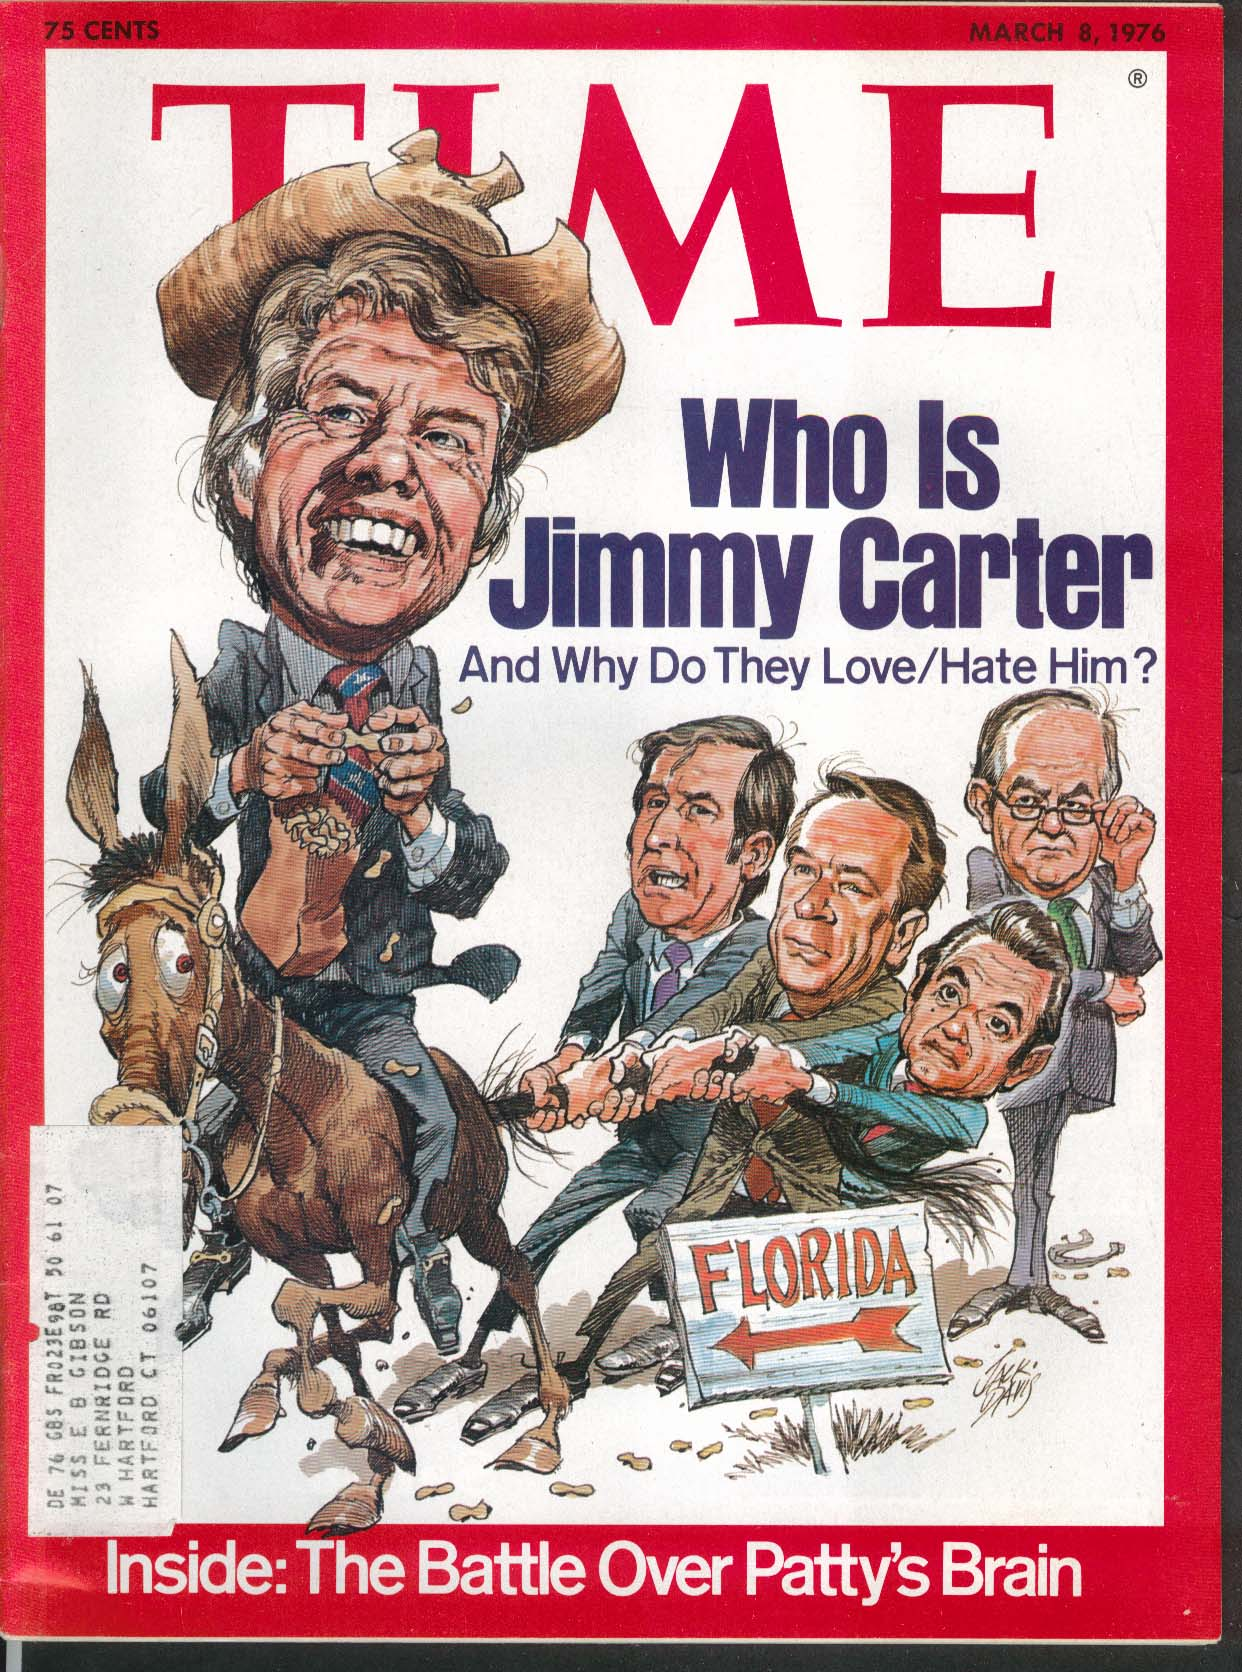 time-carter-march-8-1976.jpg